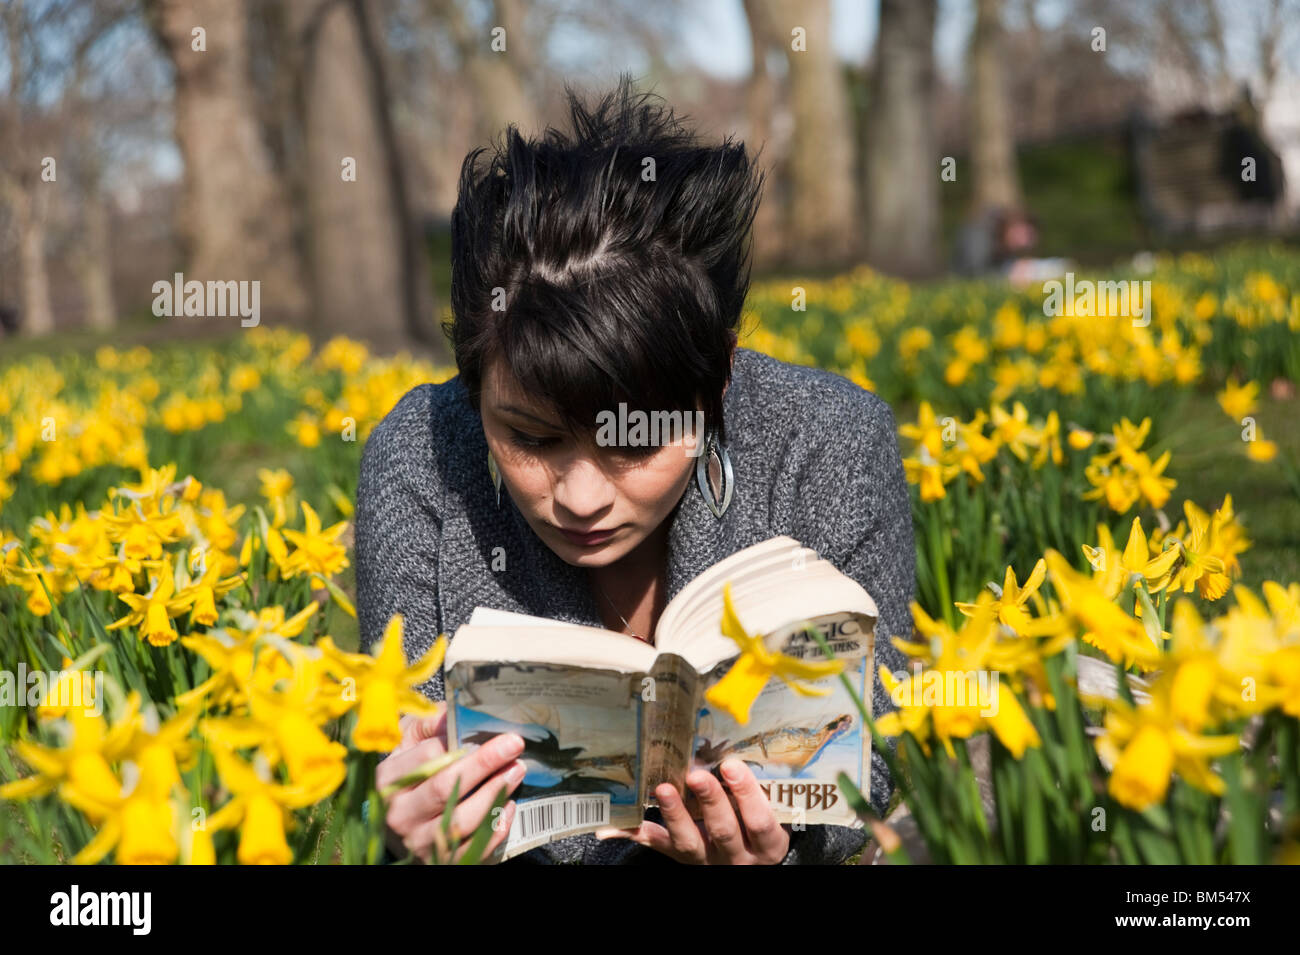 Young woman reading a book amongst the daffodils in St James's Park, London, England, UK - Stock Image